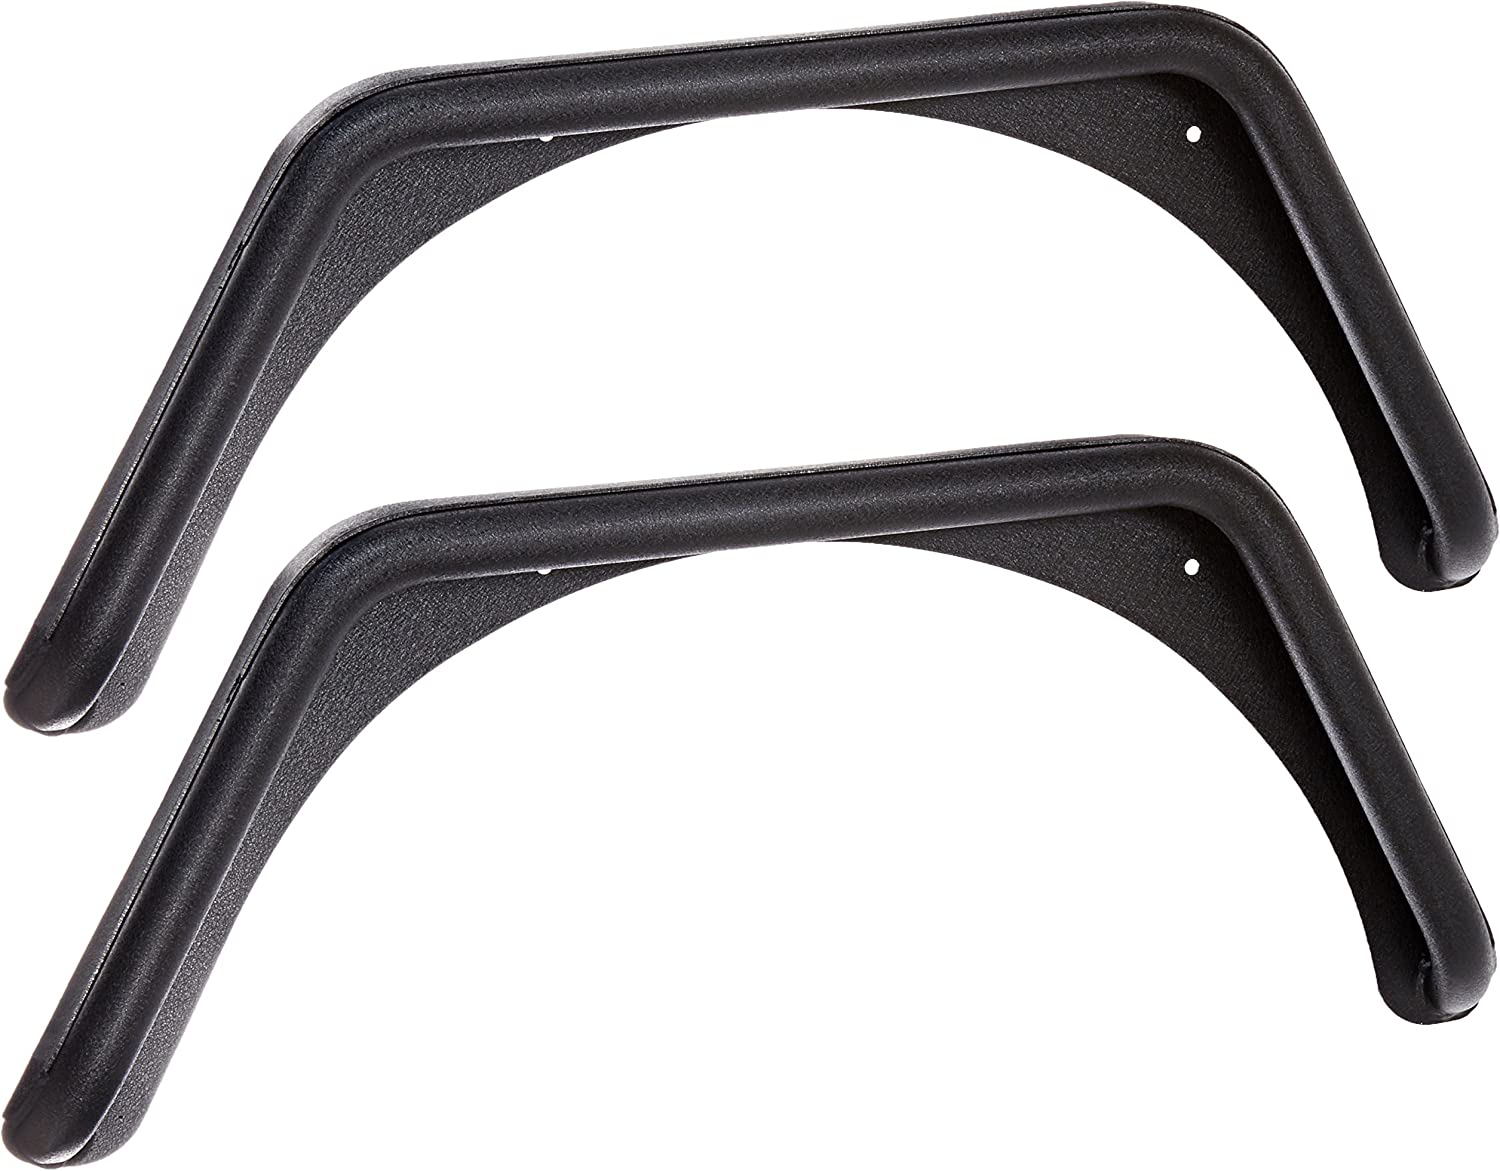 Smittybilt XRC Rear Bolt-on Flares for TJ - 76875, Textured Black